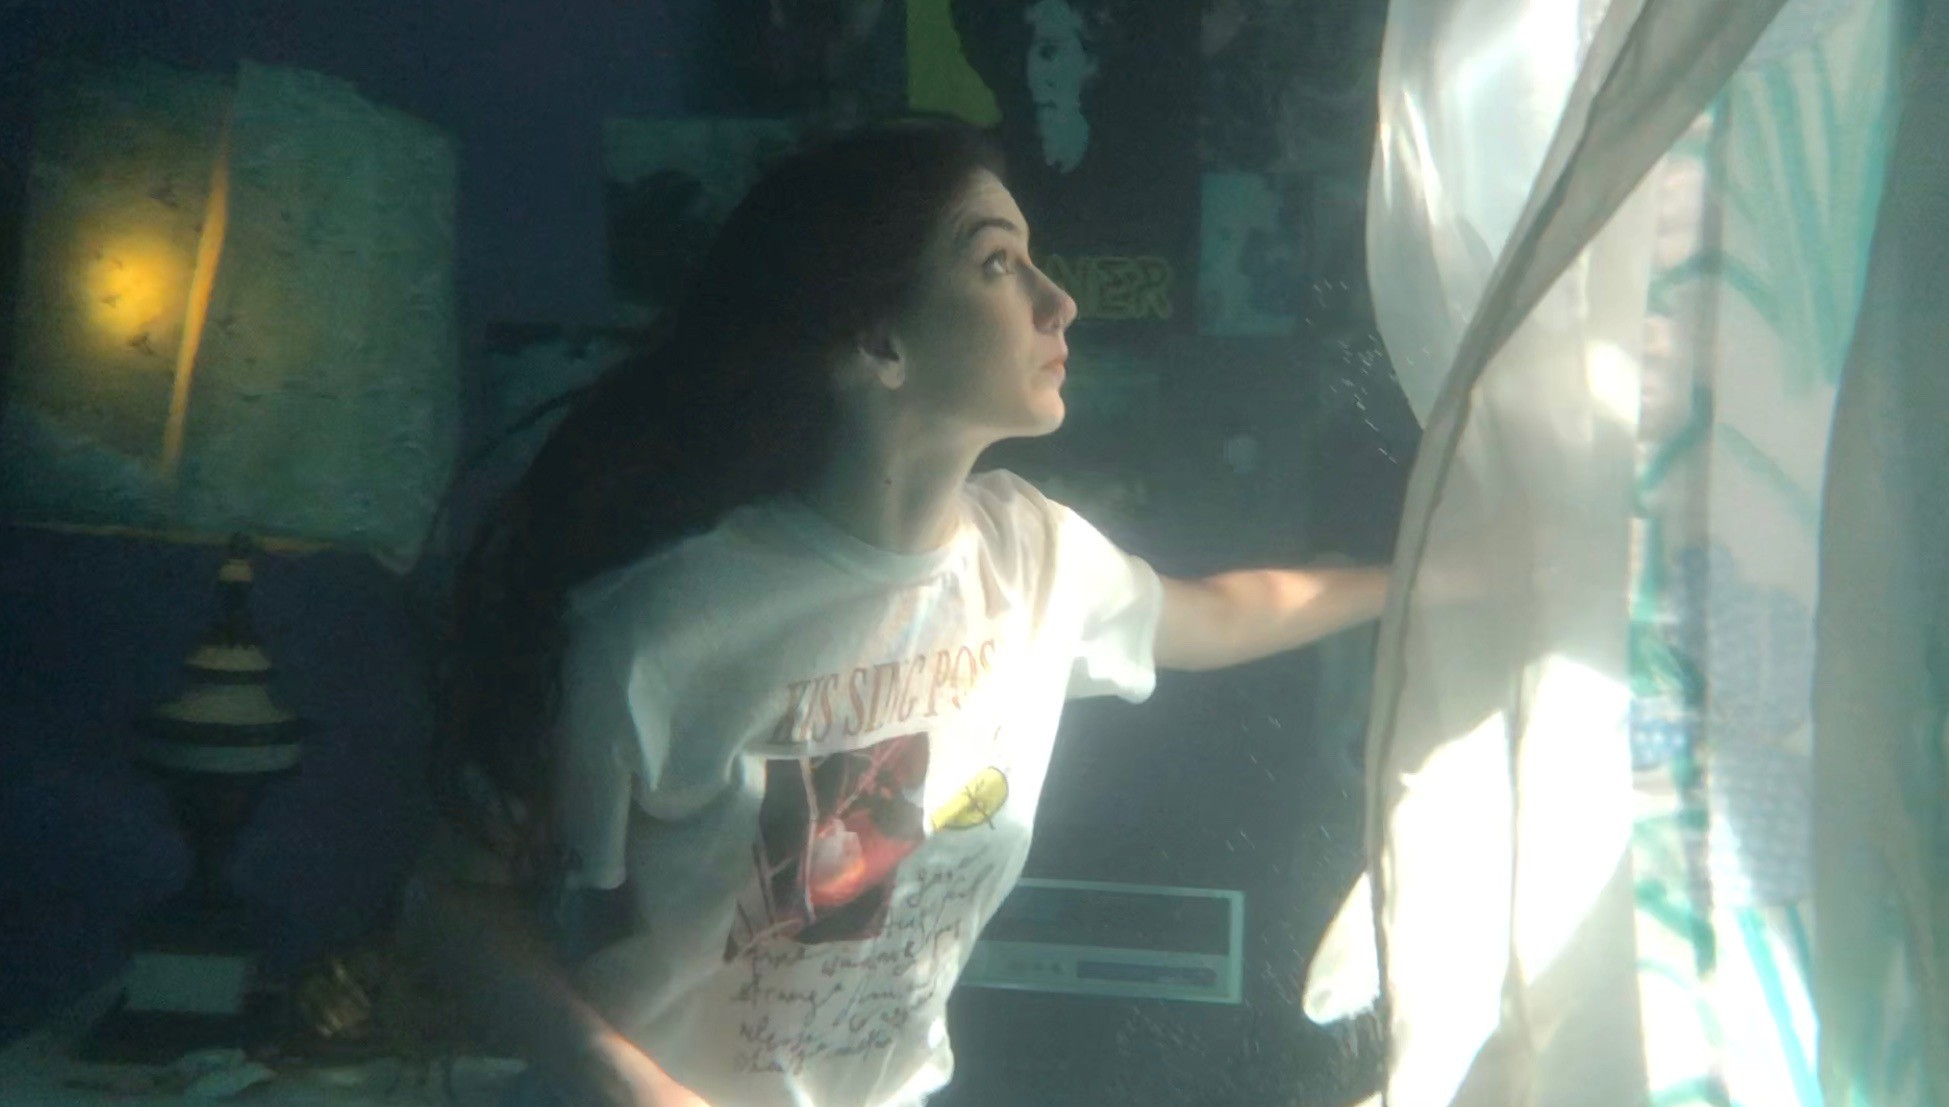 Weyes Blood coming to Dublin for Button Factory show